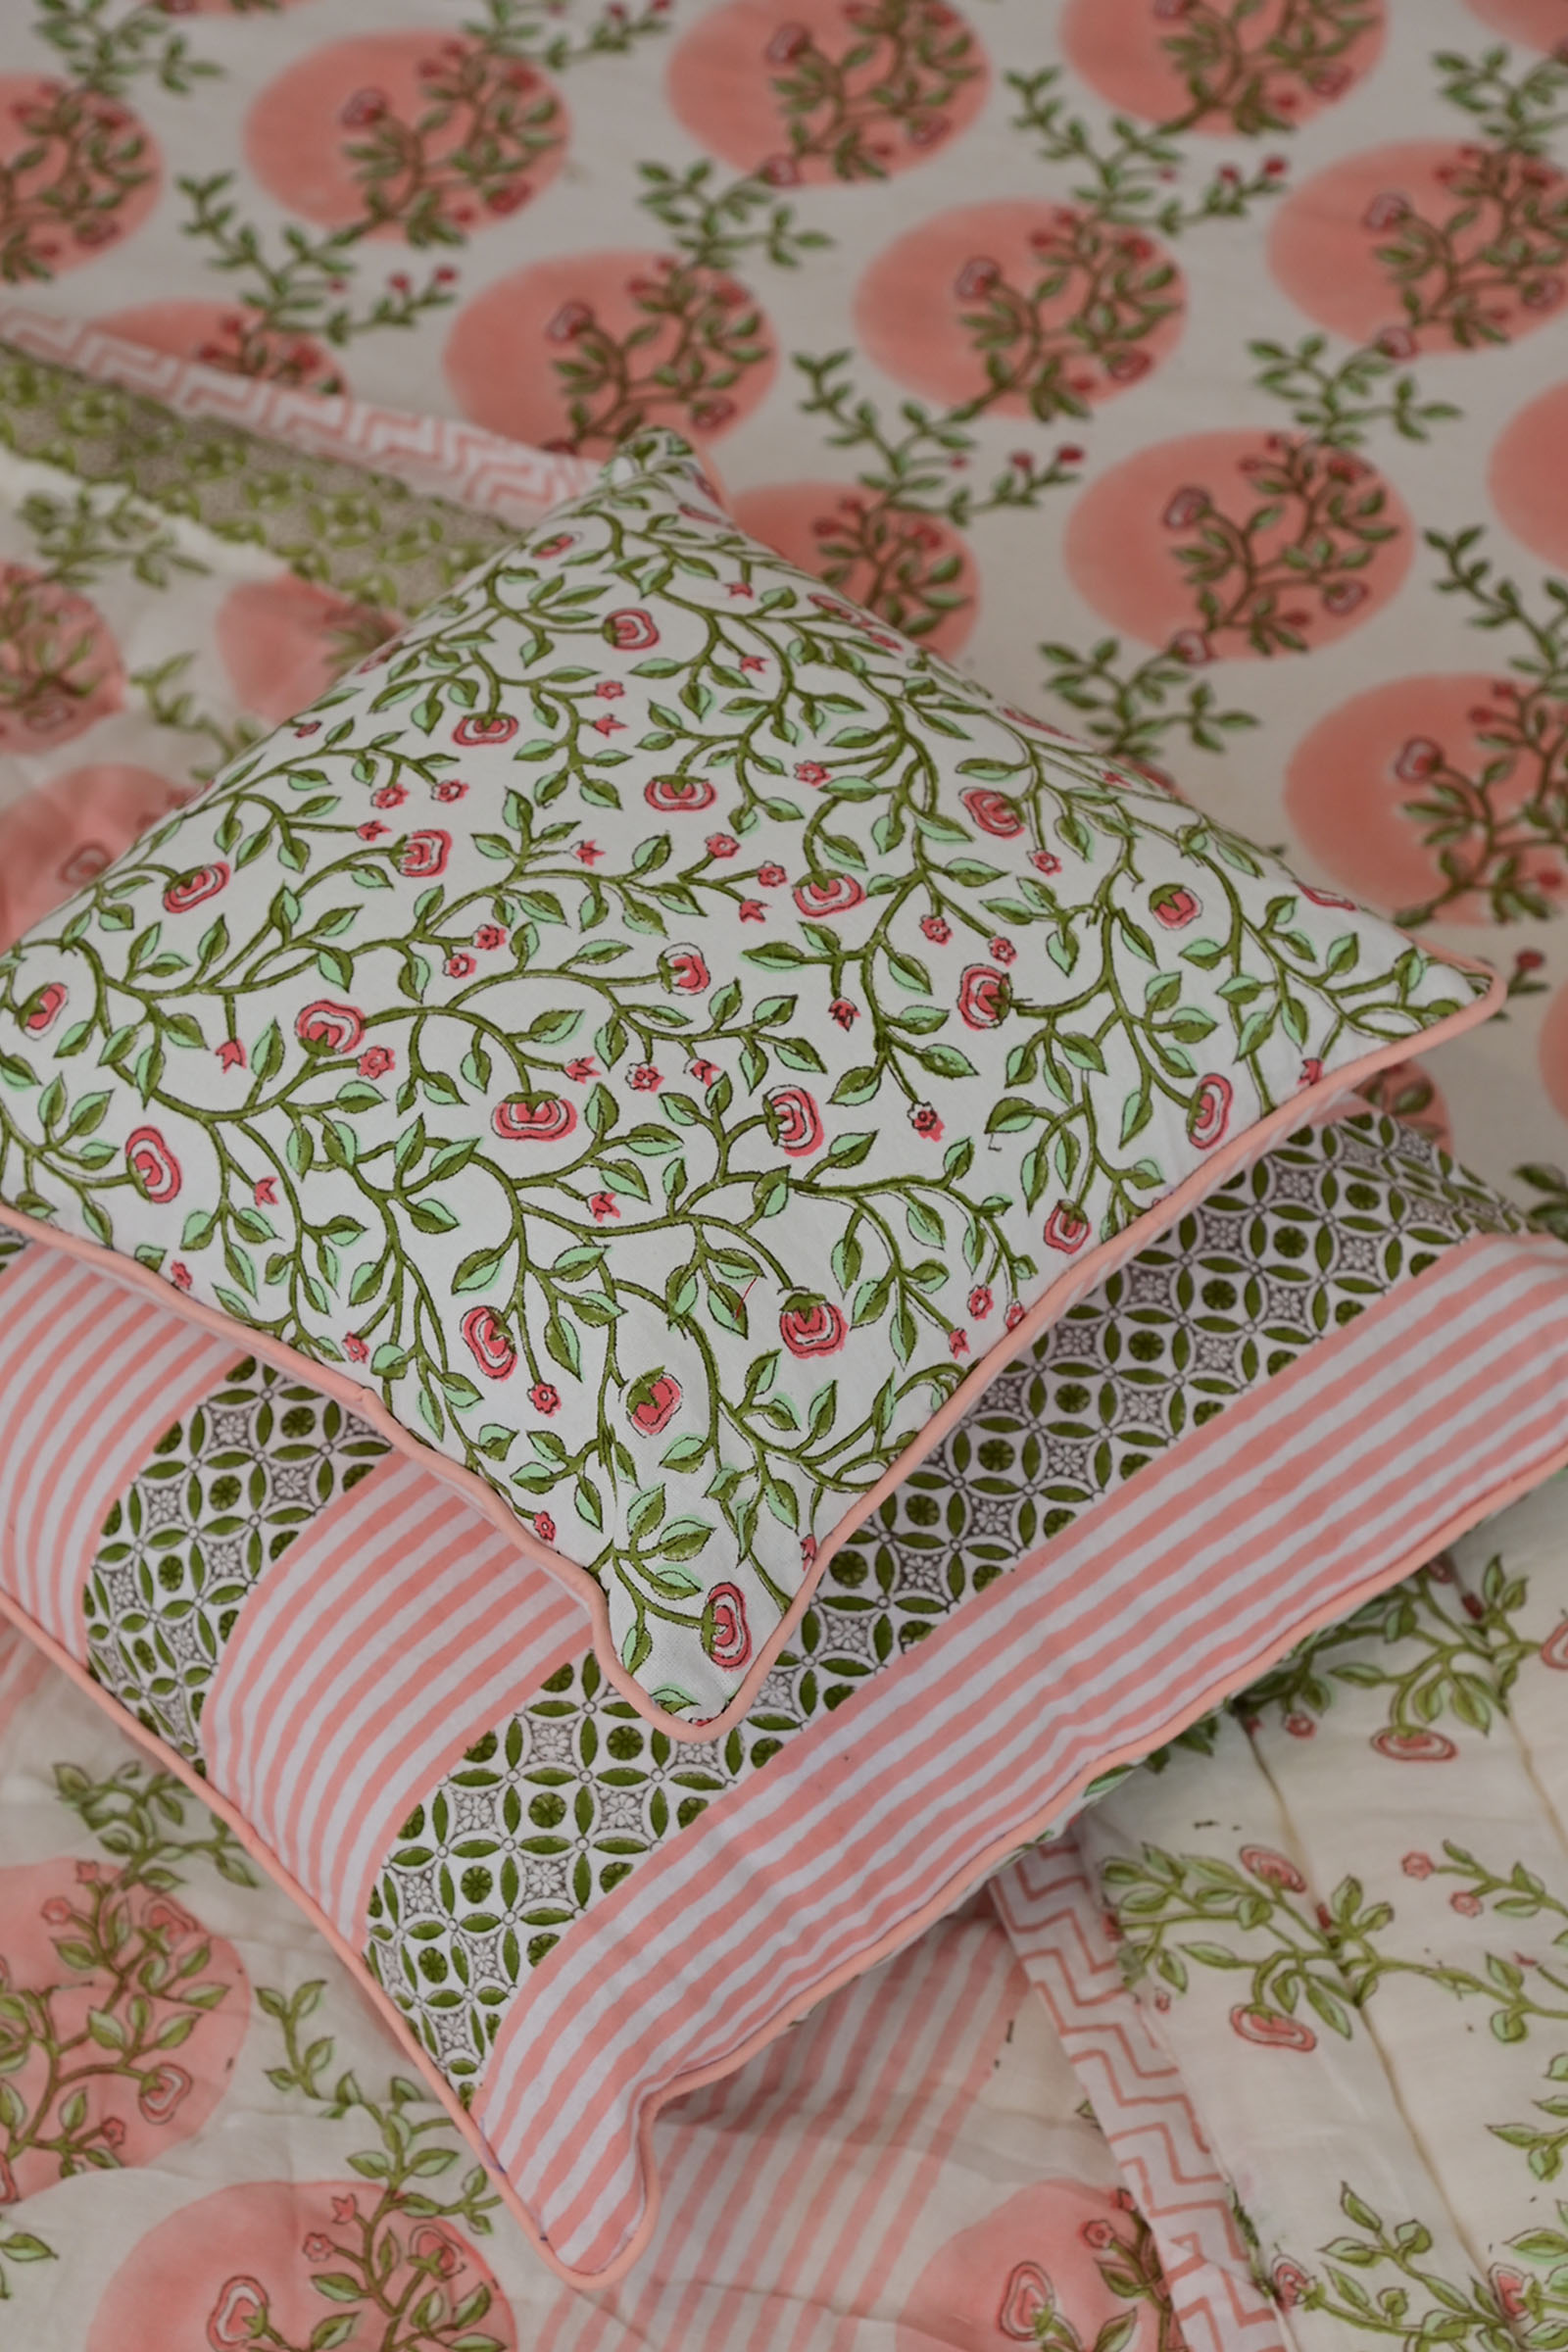 Blooming trail 12*12 Cushion Cover